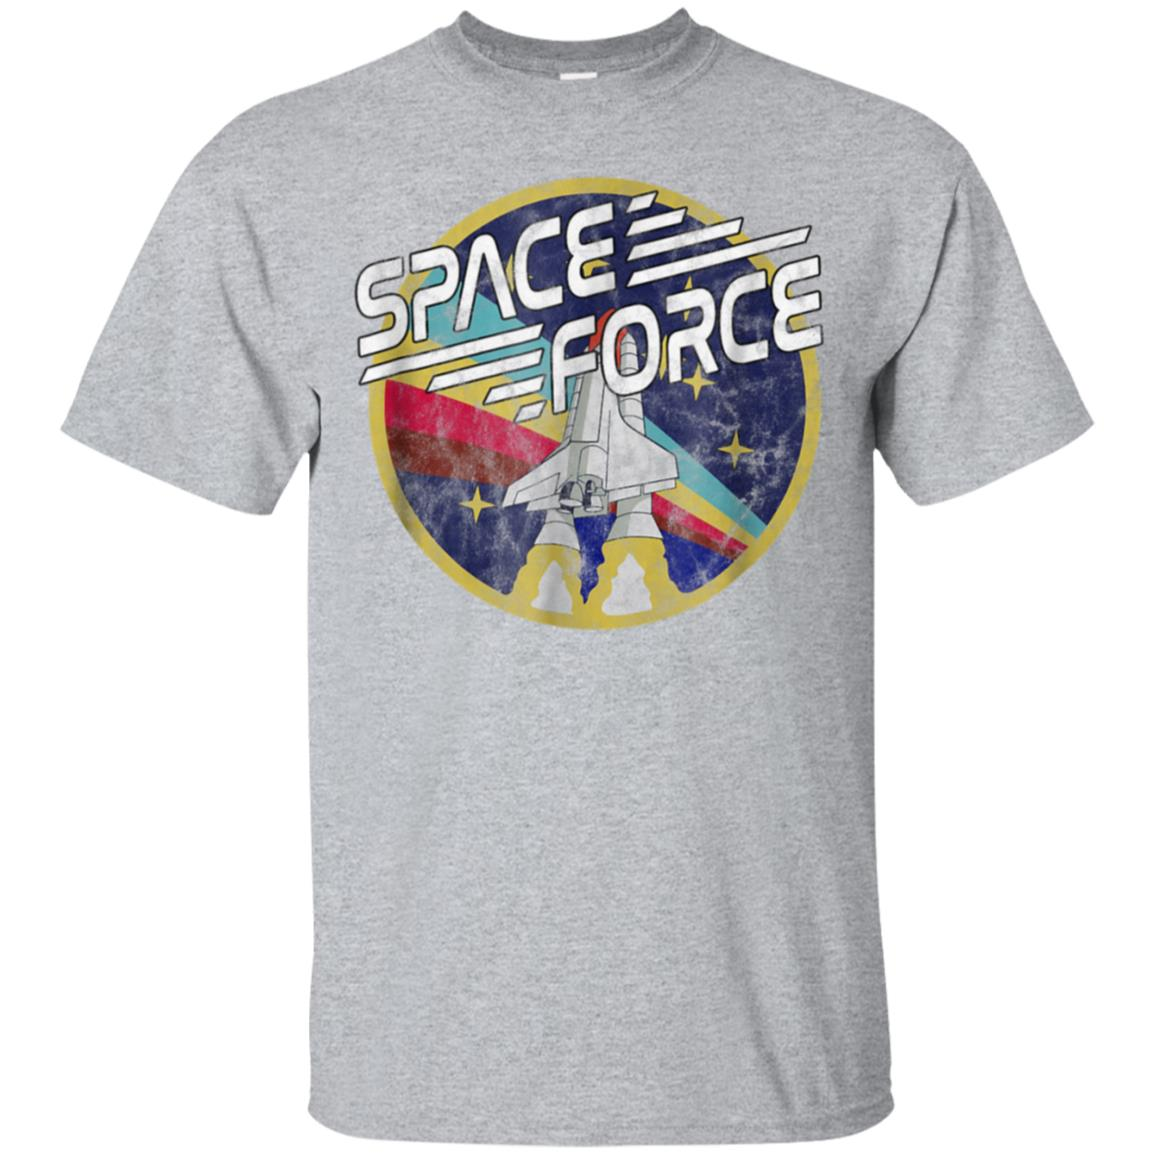 Space Force vintage t-shirt 99promocode